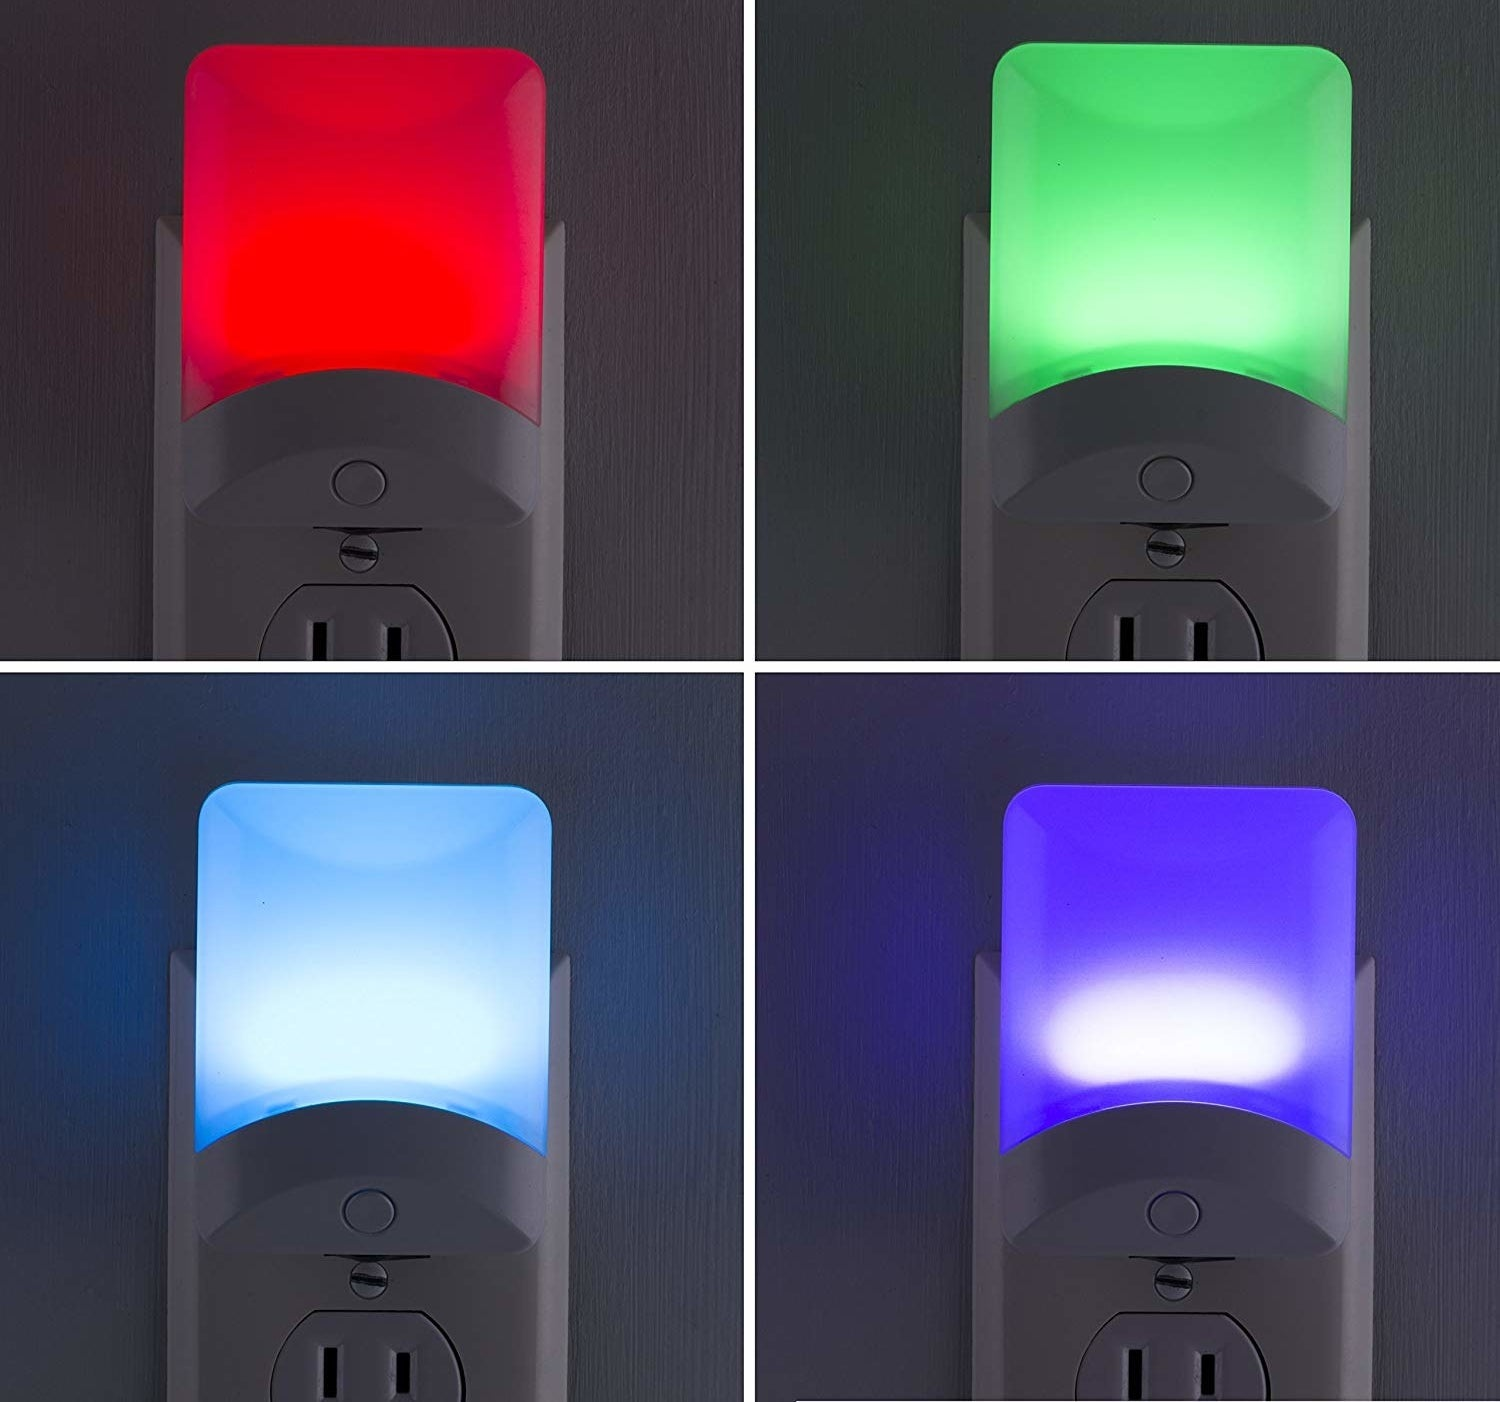 Features eight different colors, and three color modes — color-changing, soft white, or choose your favorite of the eight colors. It also has light-sensing technology so it'll turn on at dusk and turn off at dawn. Get it from Amazon for $7.33 (available in two finishes).